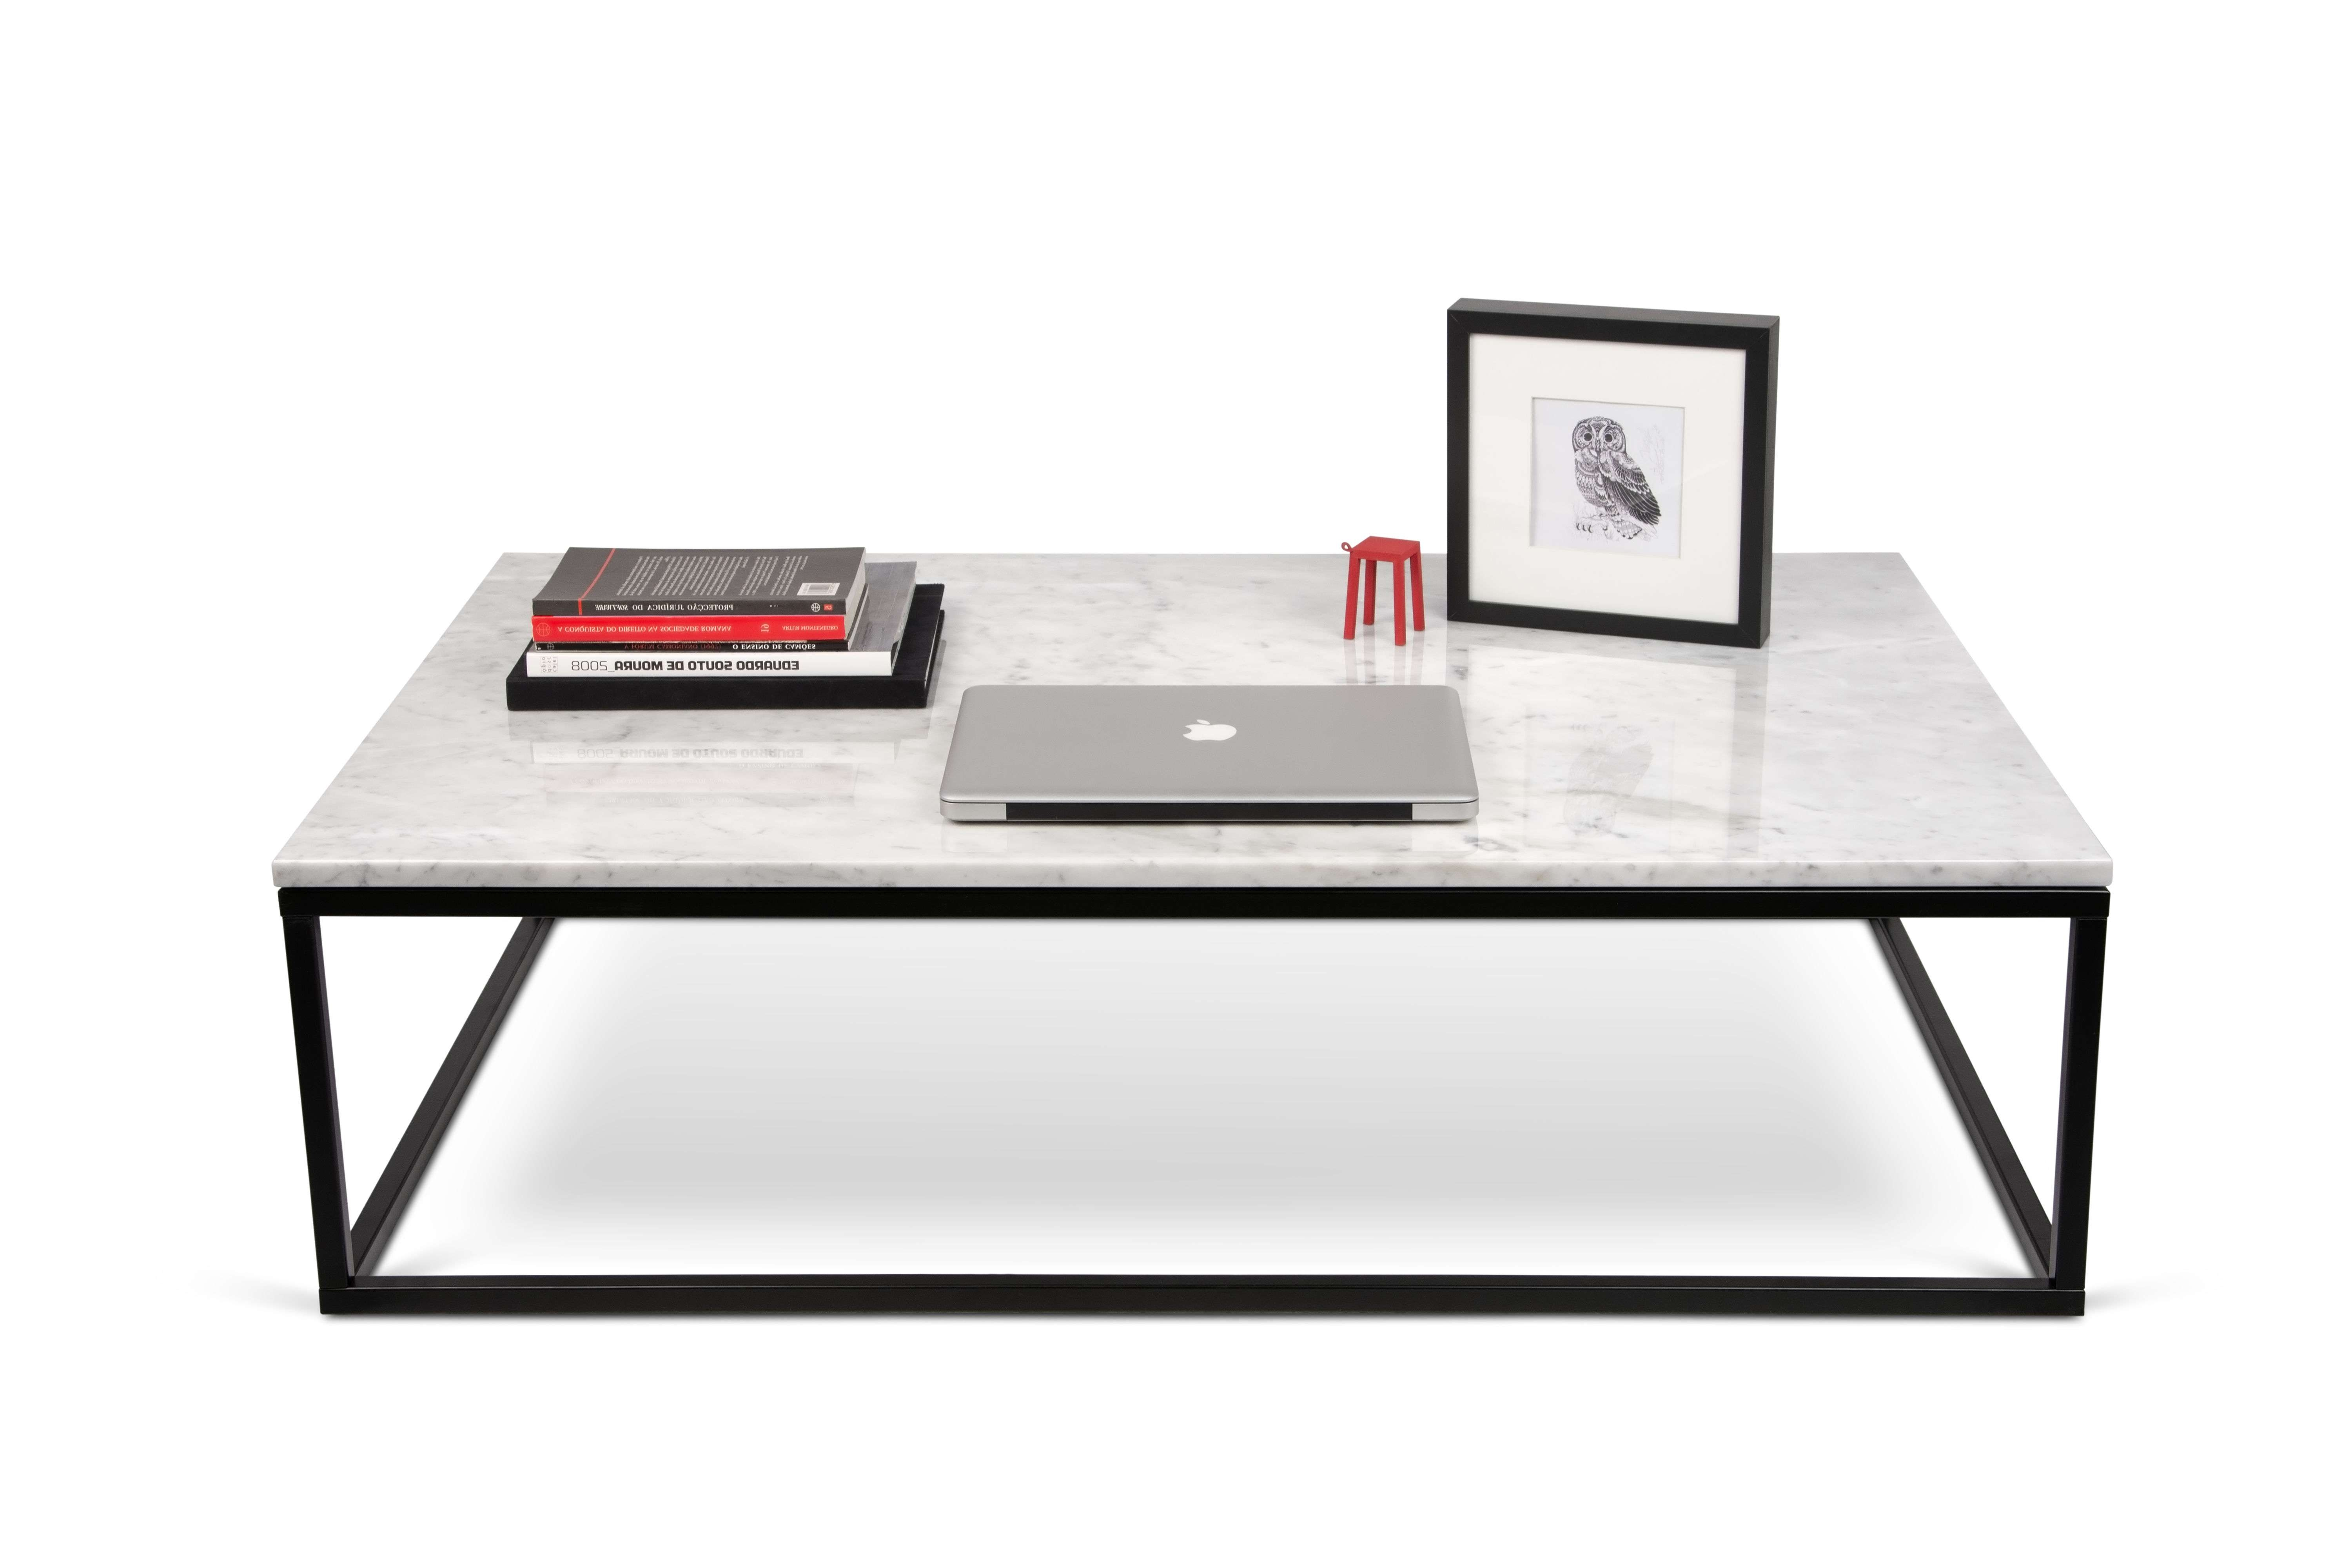 Marble Coffee Table – / Marble – 120 X 75 Cm White Marble / Black Intended For Recent White And Black Coffee Tables (View 11 of 20)